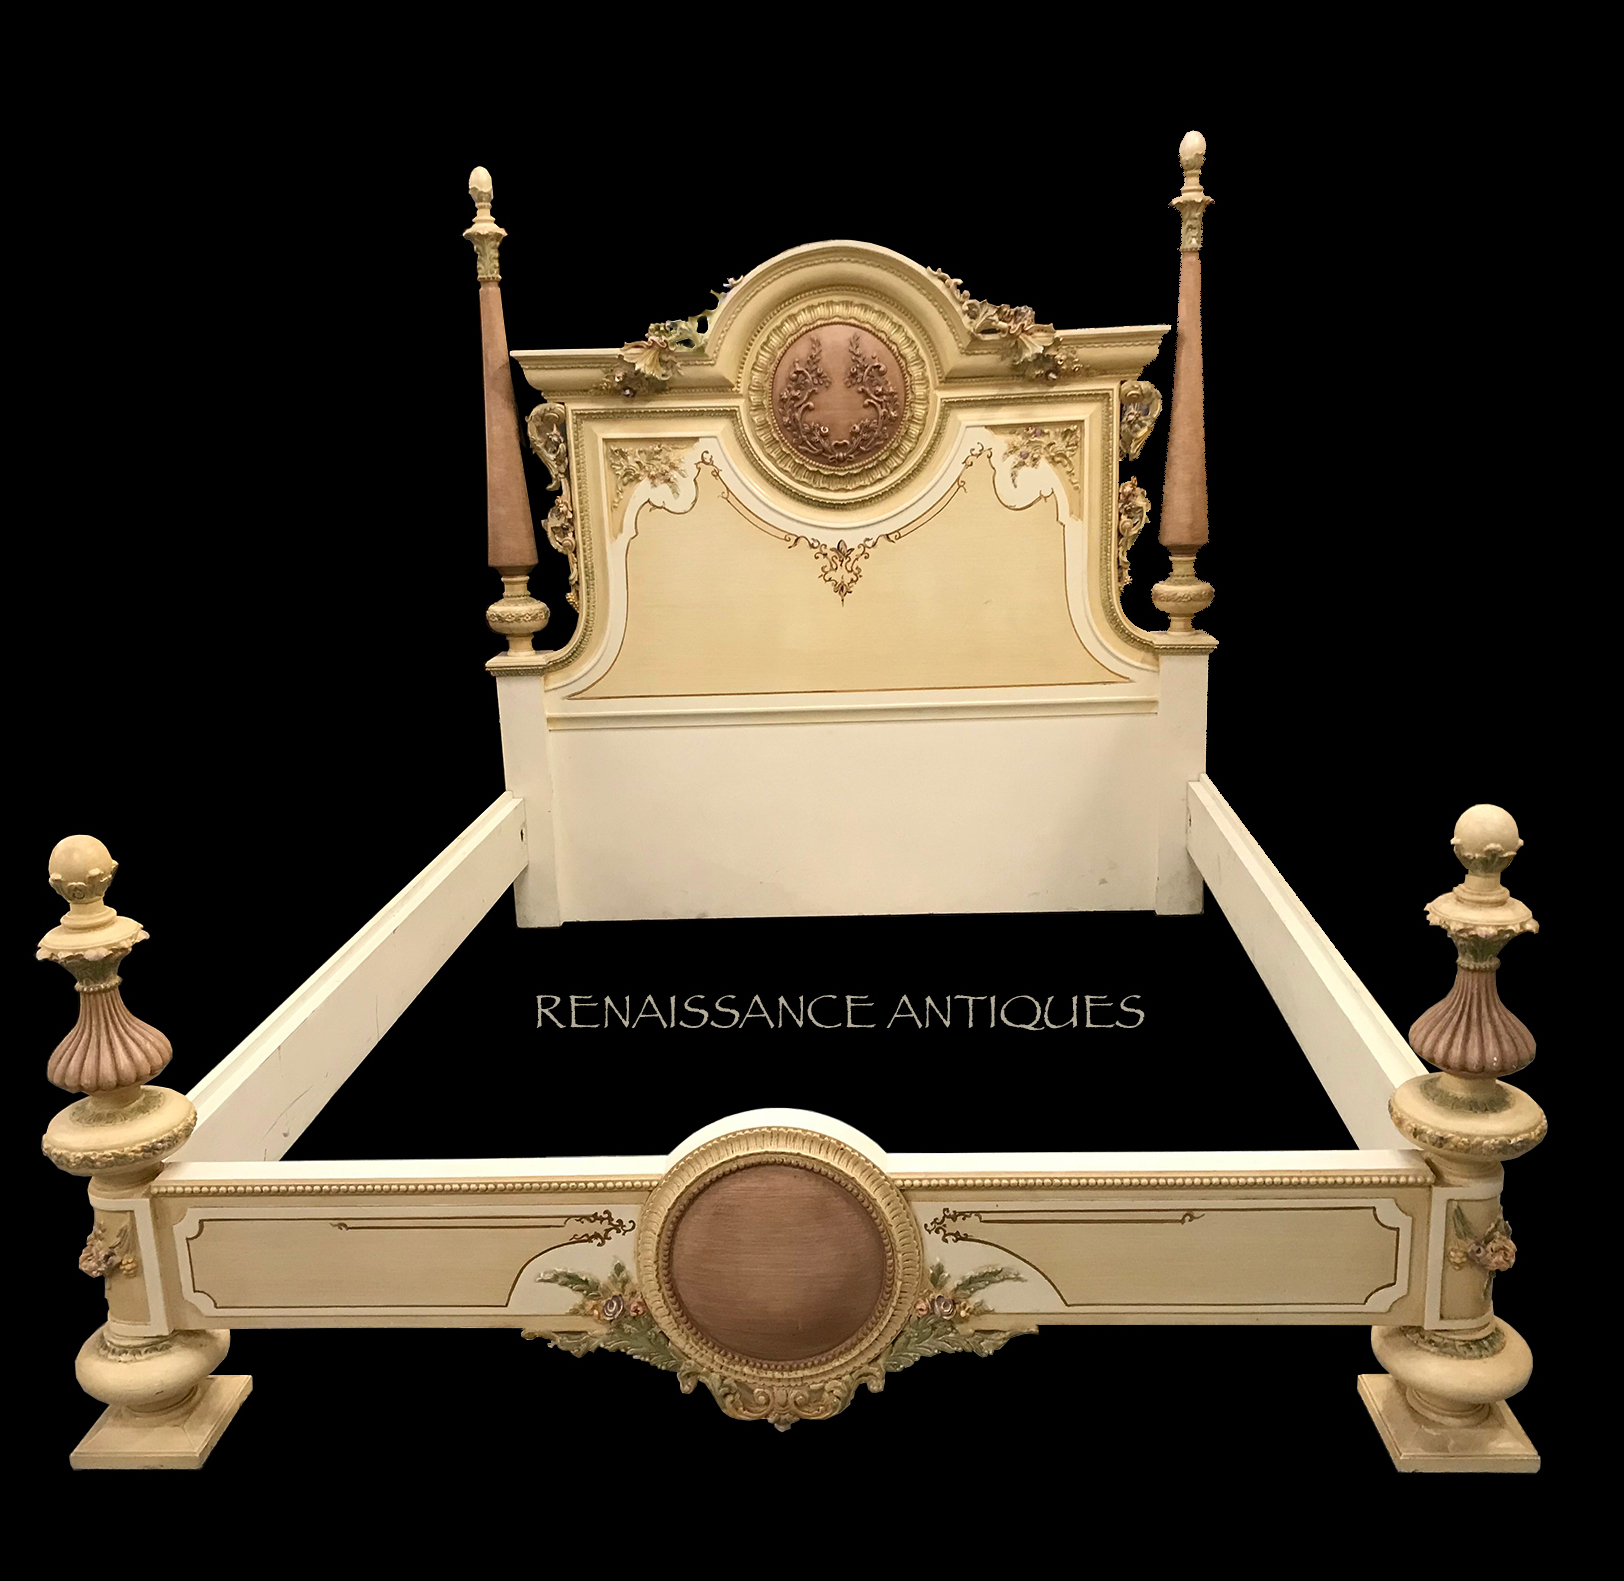 Very nice antique style bed .. Renaissance Antique Furniture and Lighting Warehouse Dublin Ireland